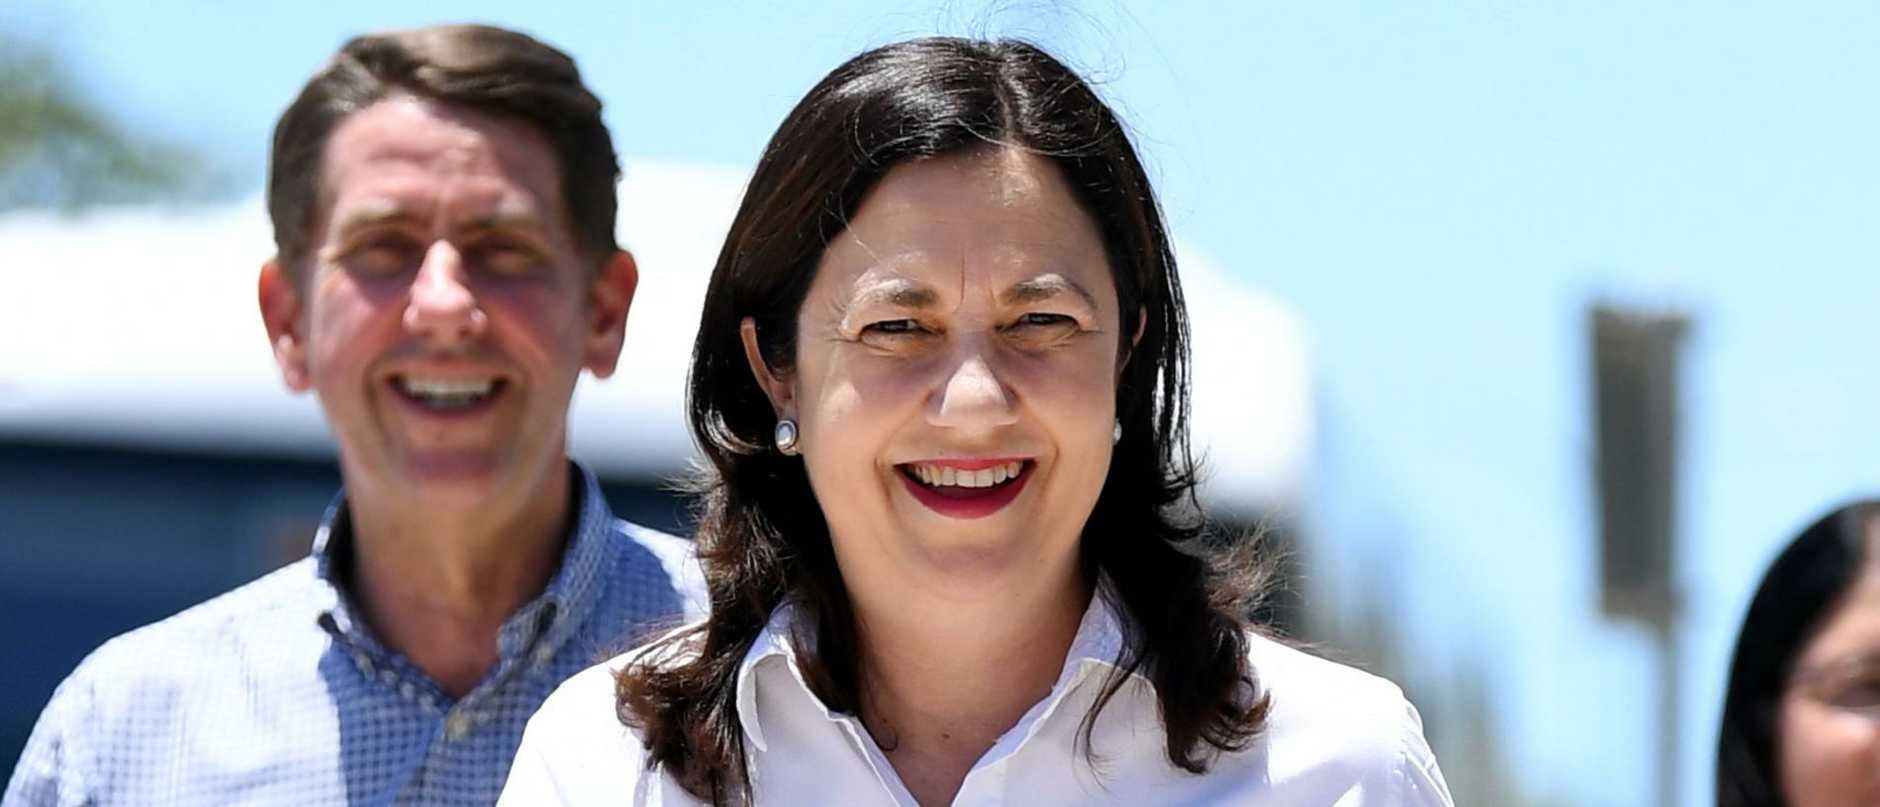 PALASZCZUK ELECTION